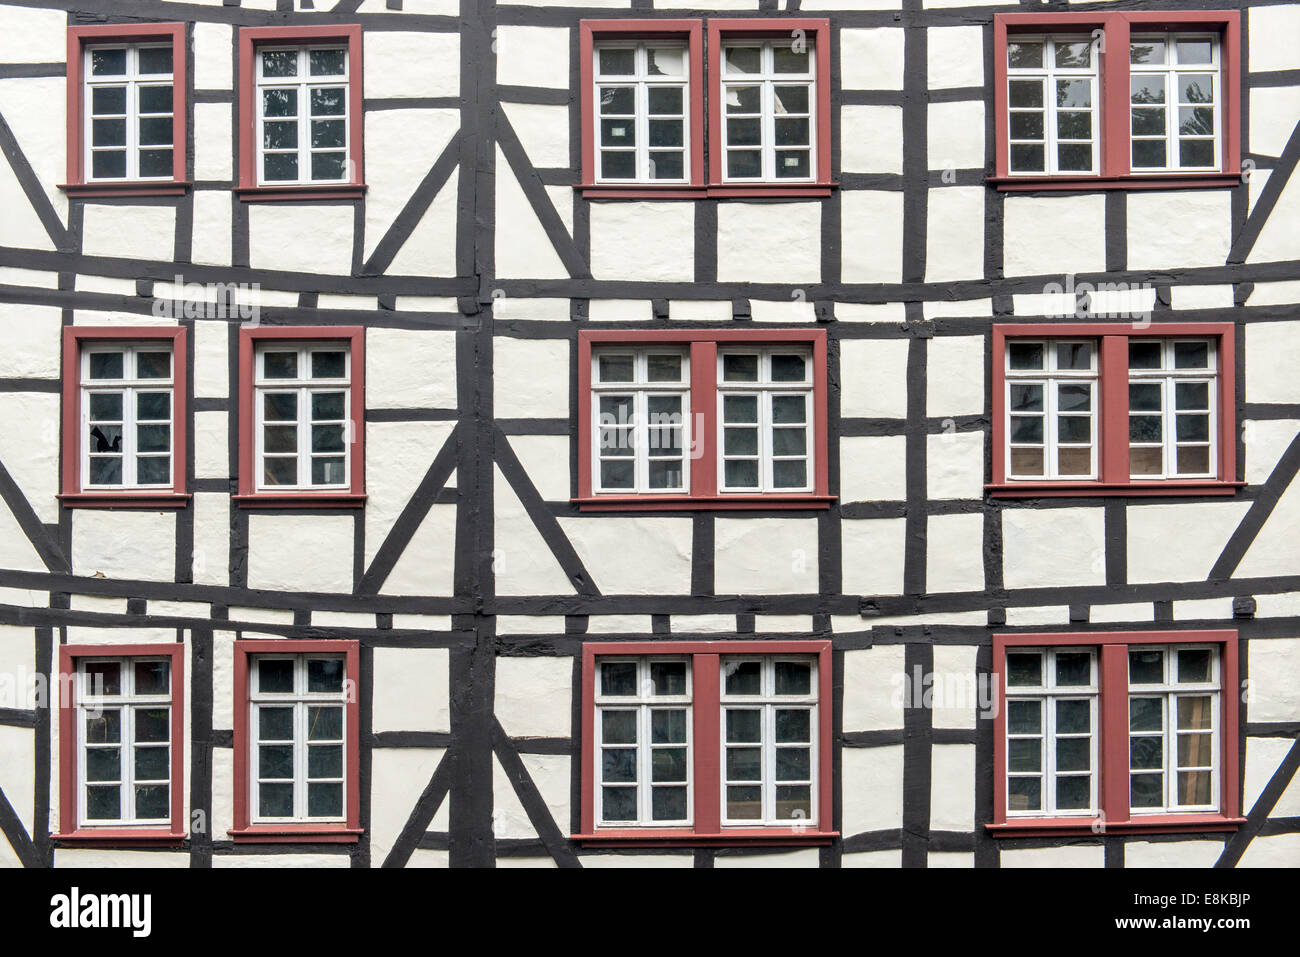 Monschau, half-timbered houses nearly unchanged for 300 years, Germany - Stock Image